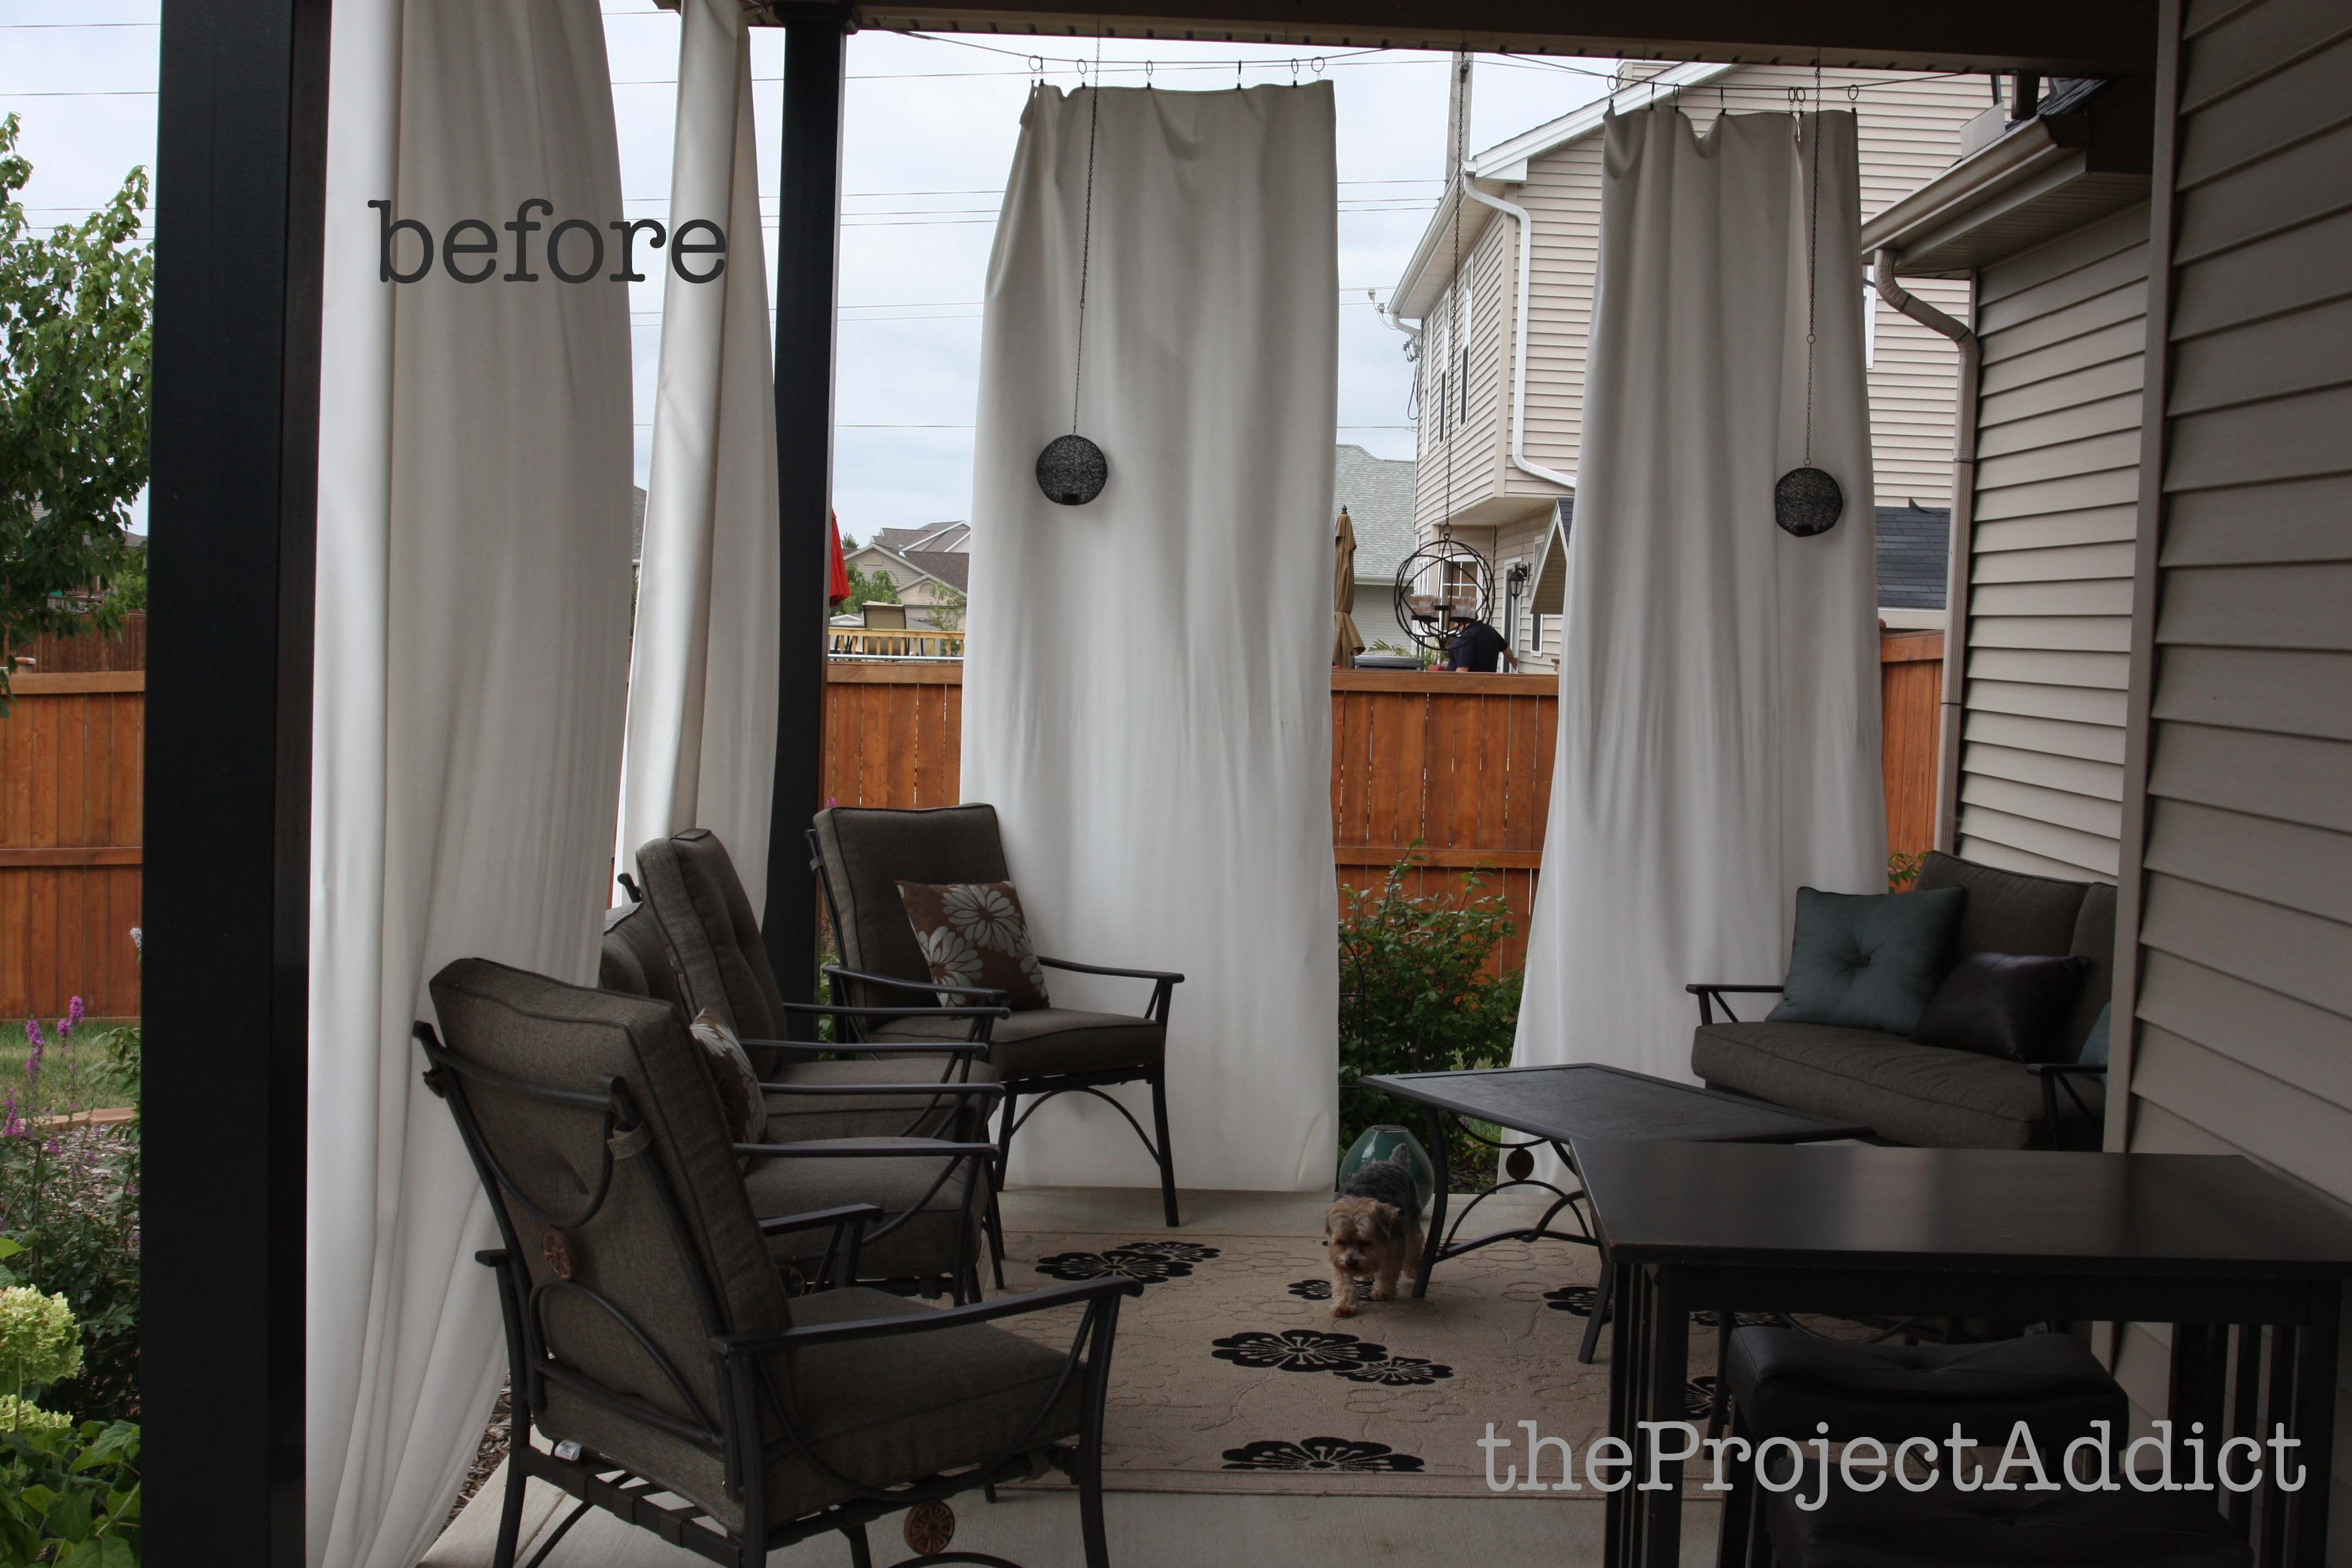 Diy outdoor curtains - How To Make Your Own Diy Outdoor Curtains And Secure Them So They Won T